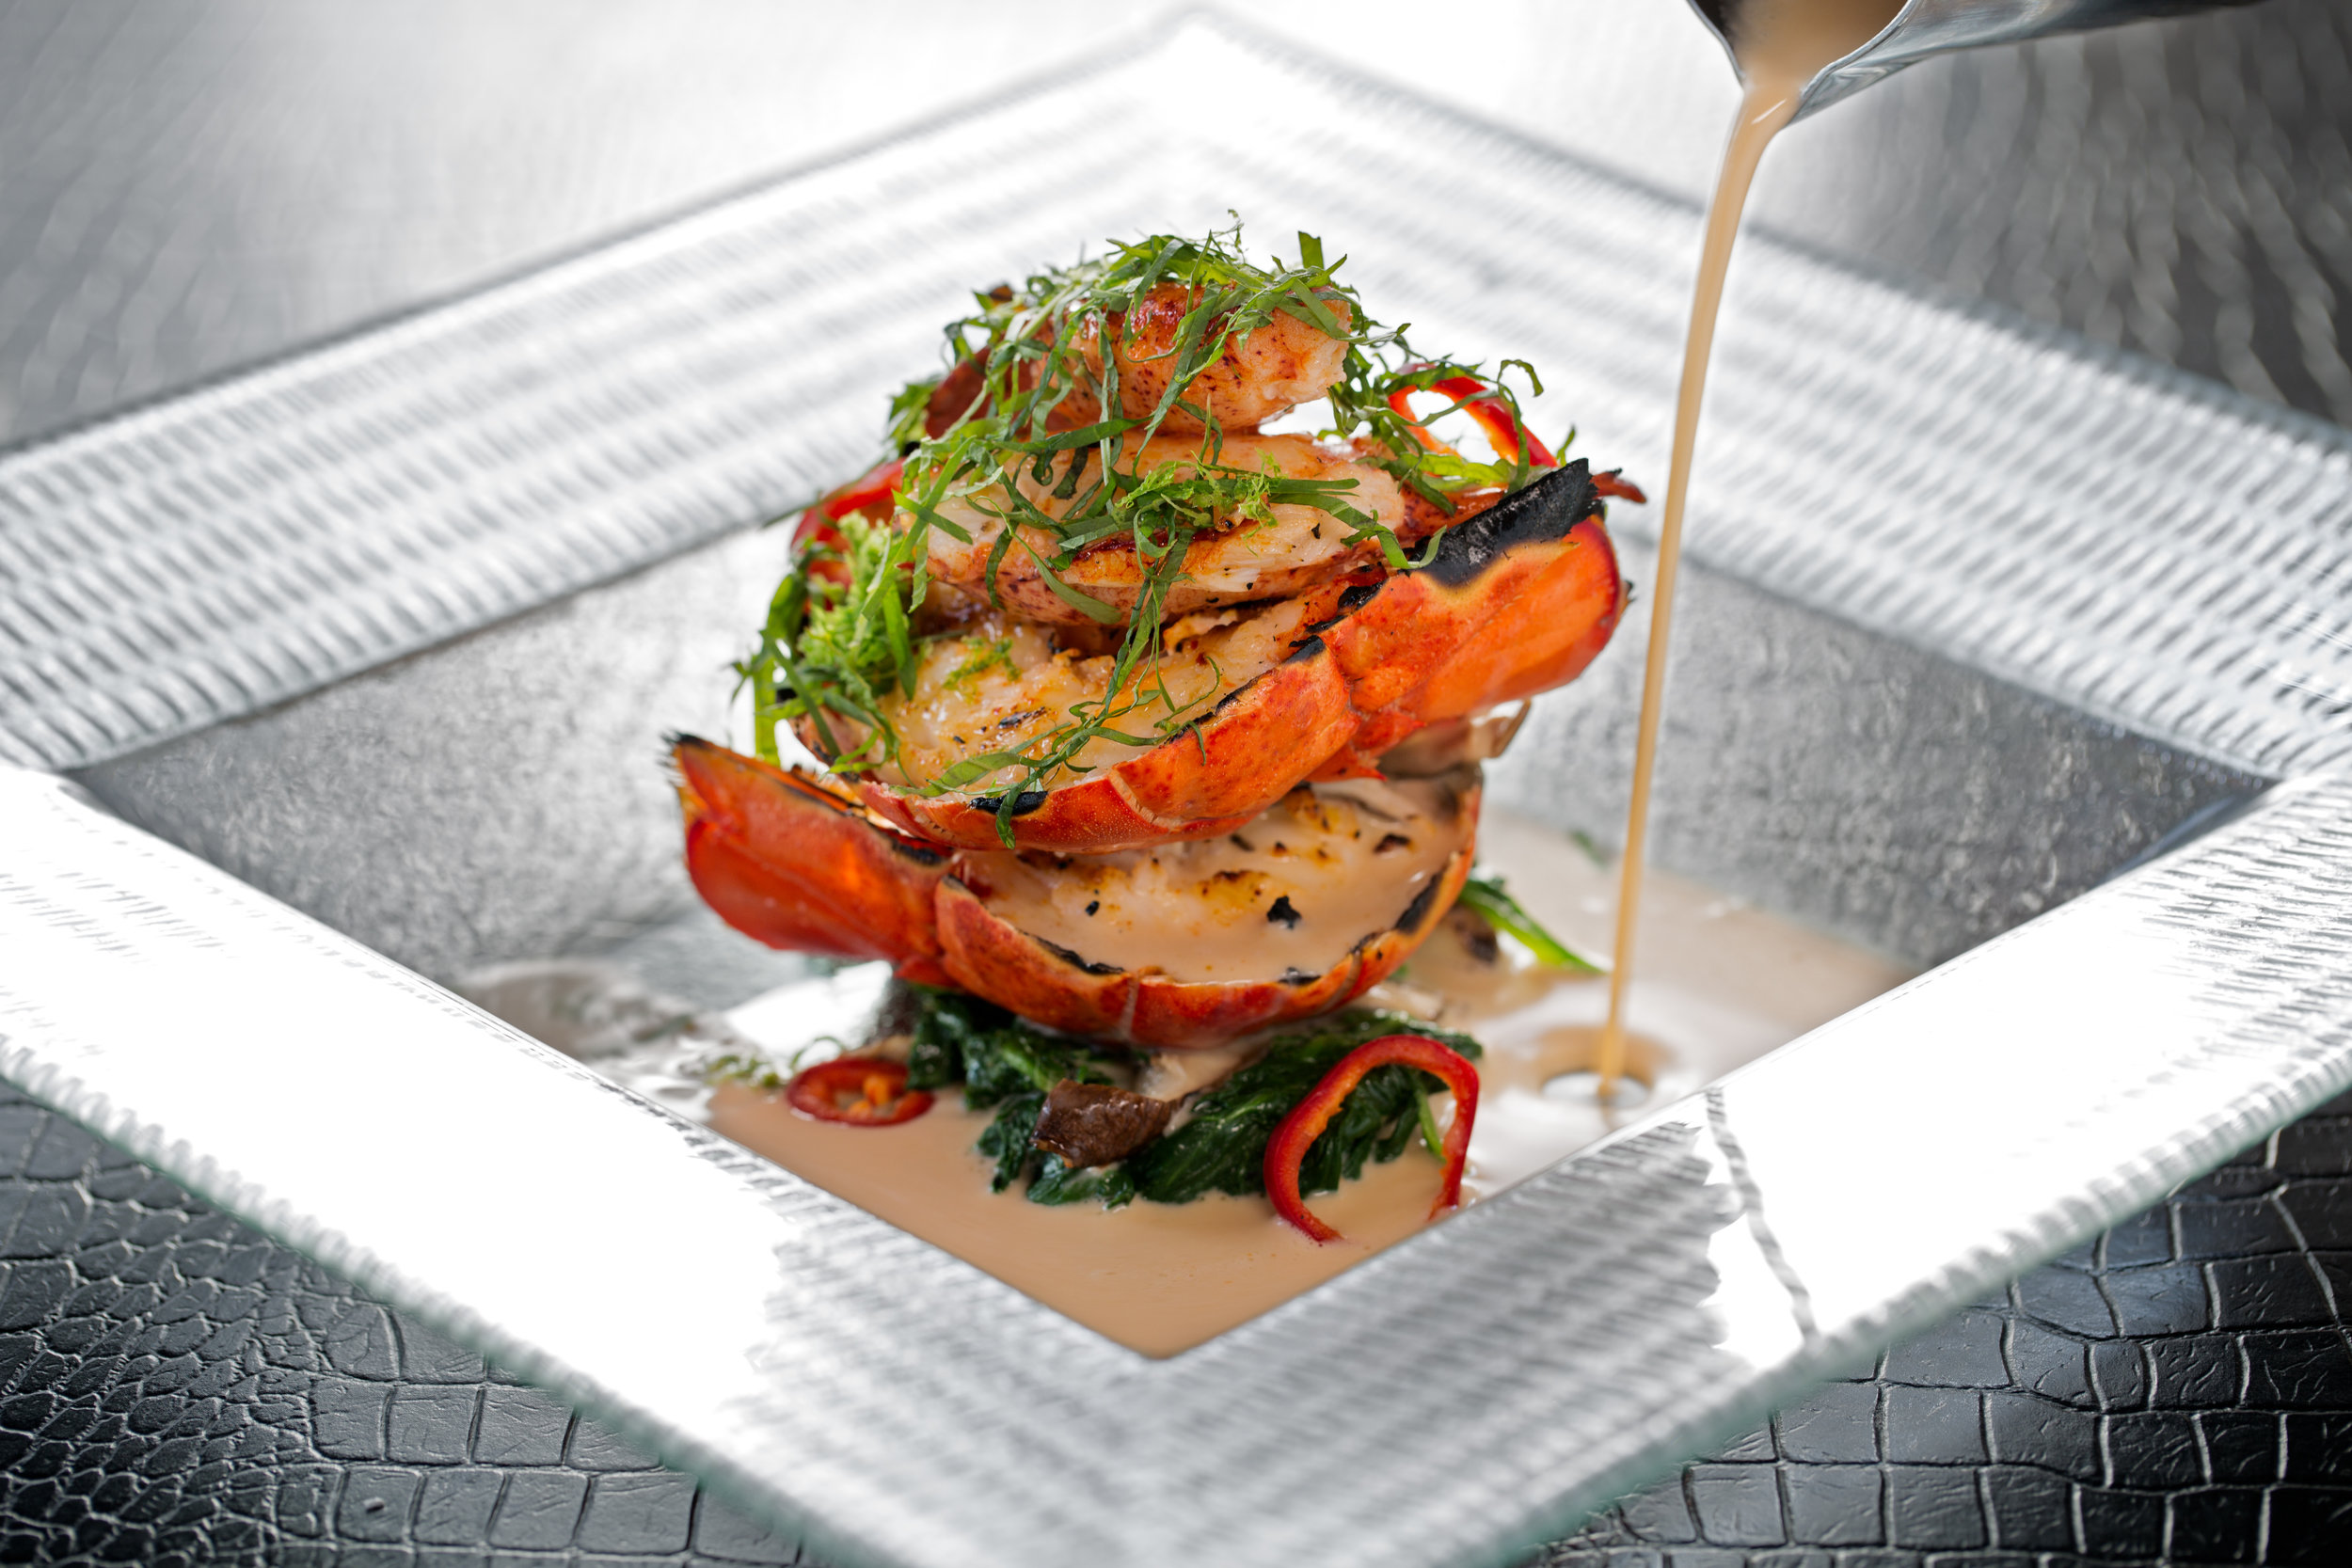 Grilled Maine lobster with shiitake mushroom, red chiles and ginger-coconut broth